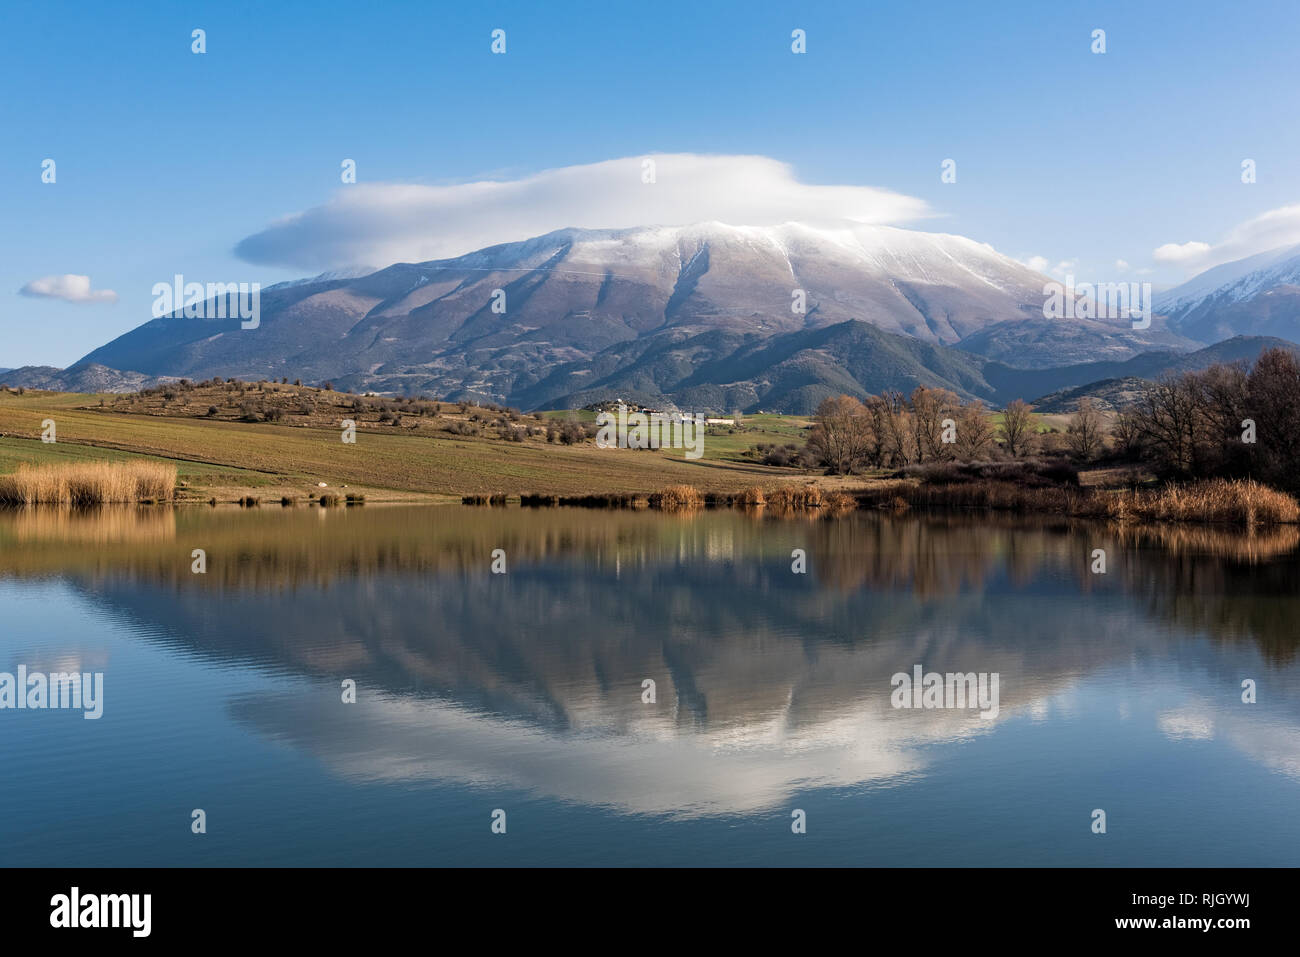 Distant view of Mount Olympus, the highest mountain of Greece and  home of the ancient Greek gods - Stock Image